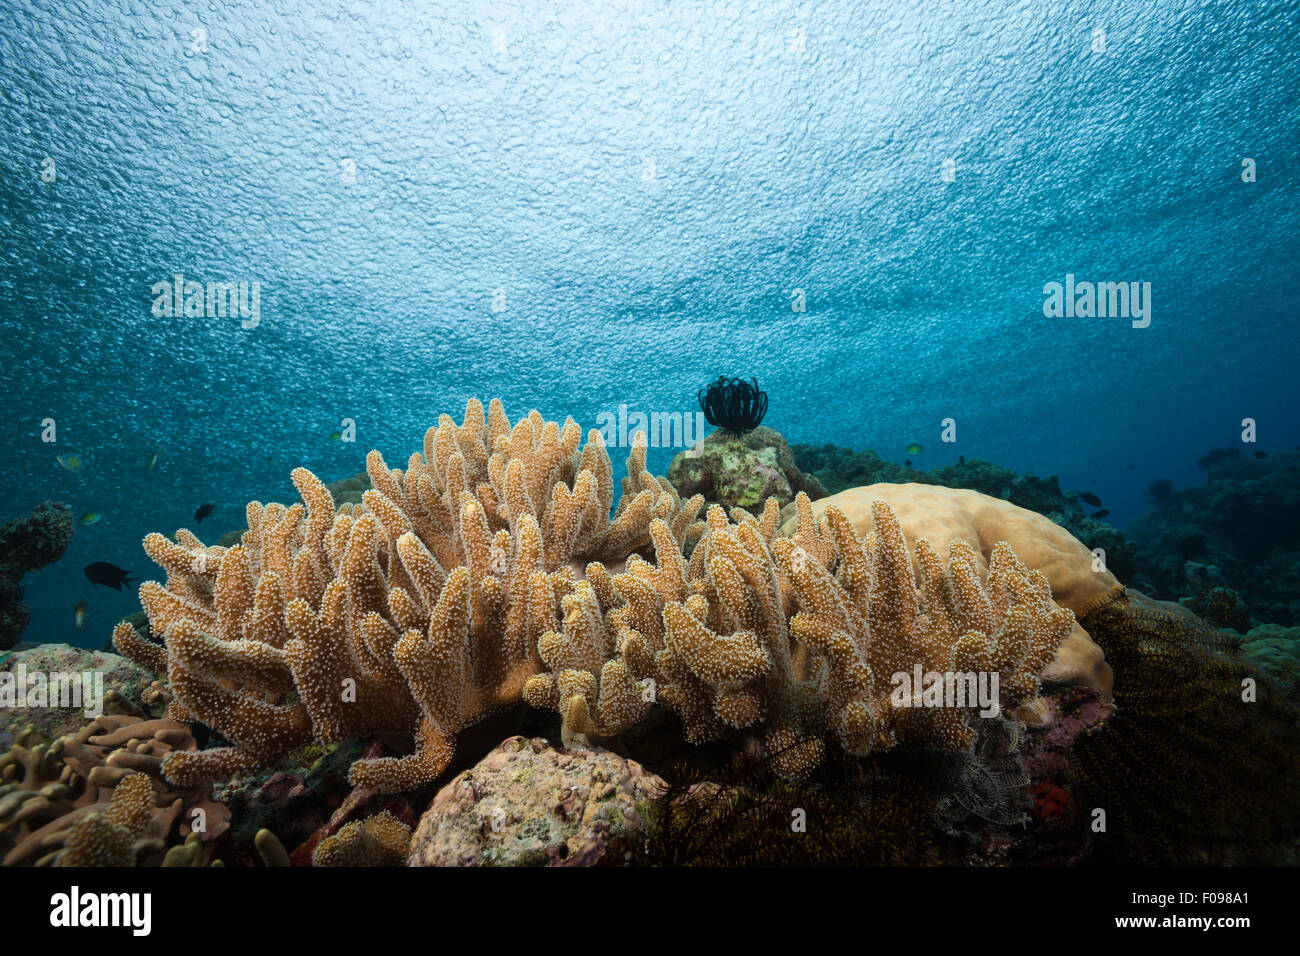 Rain over Coral Reef, Russell Islands, Solomon Islands - Stock Image